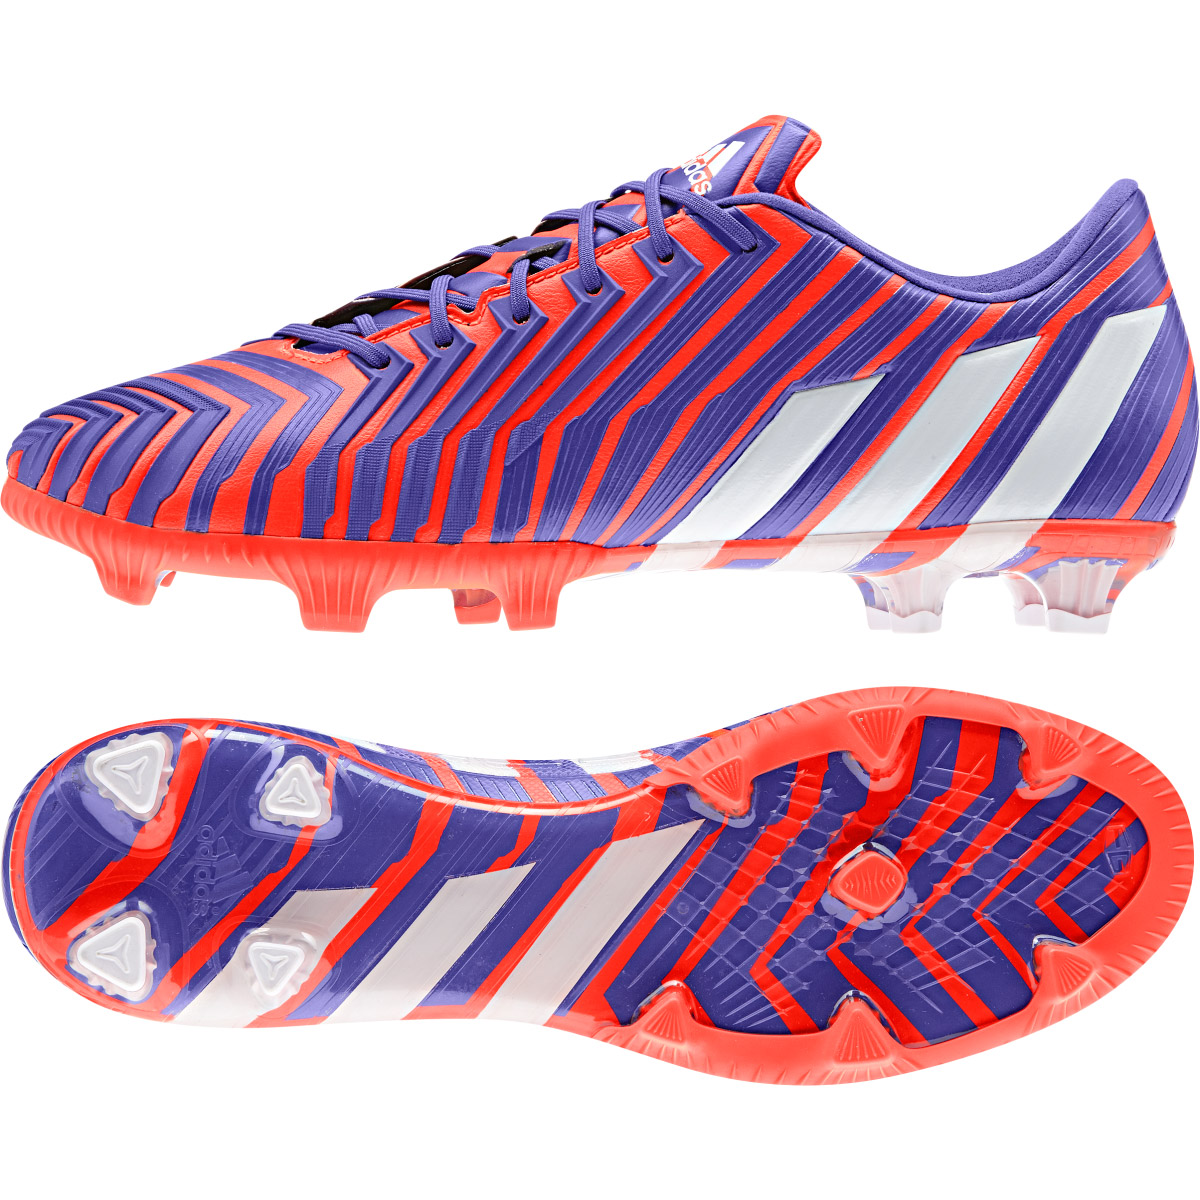 Adidas Predator Instinct Firm Ground Football Boots Red